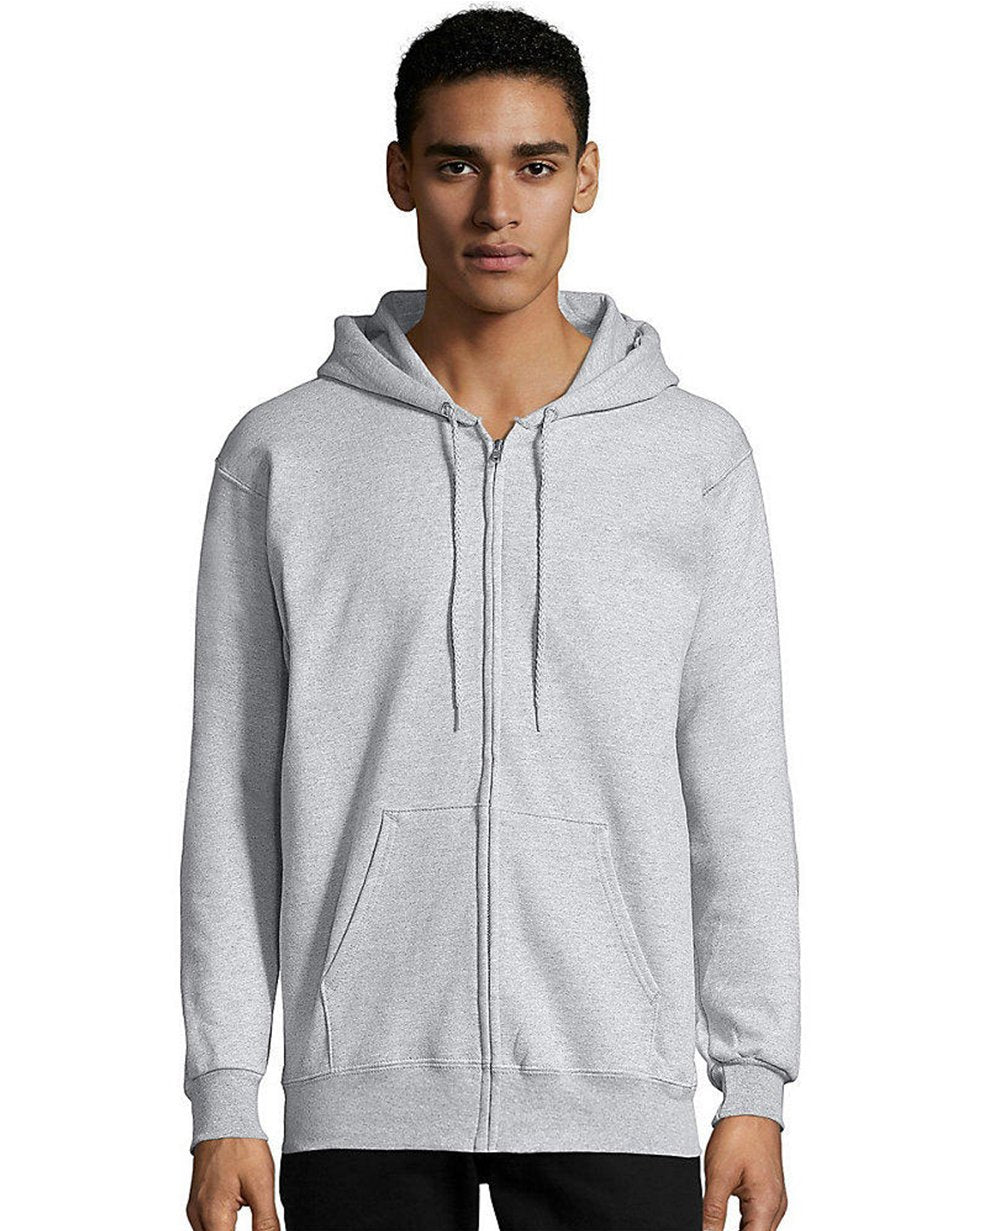 Zip-up Hoodie in Ash